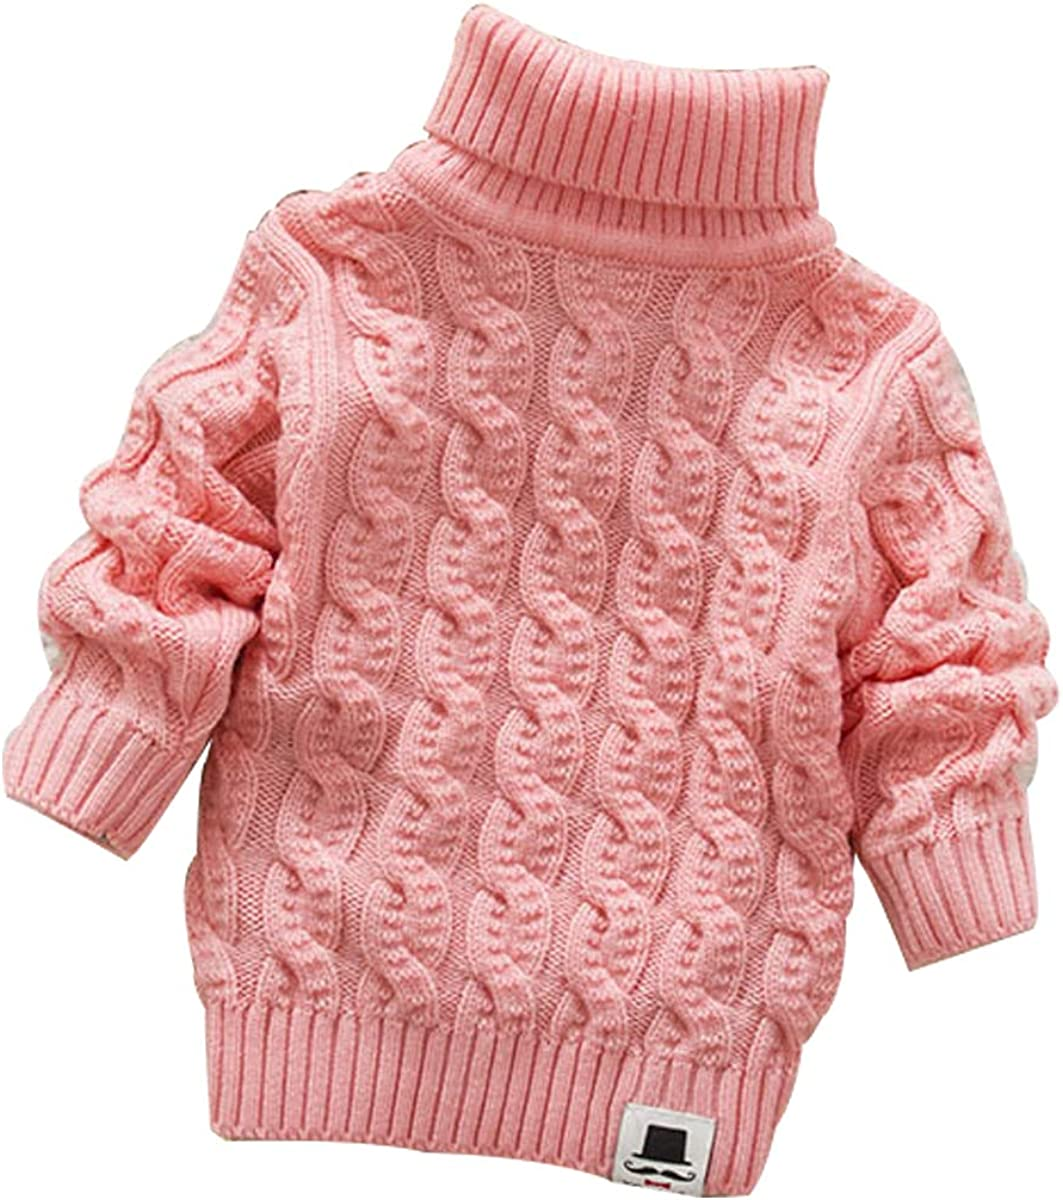 Free shipping on posting reviews MODNTOGA Baby Boys Outlet sale feature Girls Sweaters Soft Knit Turtleneck War Cable